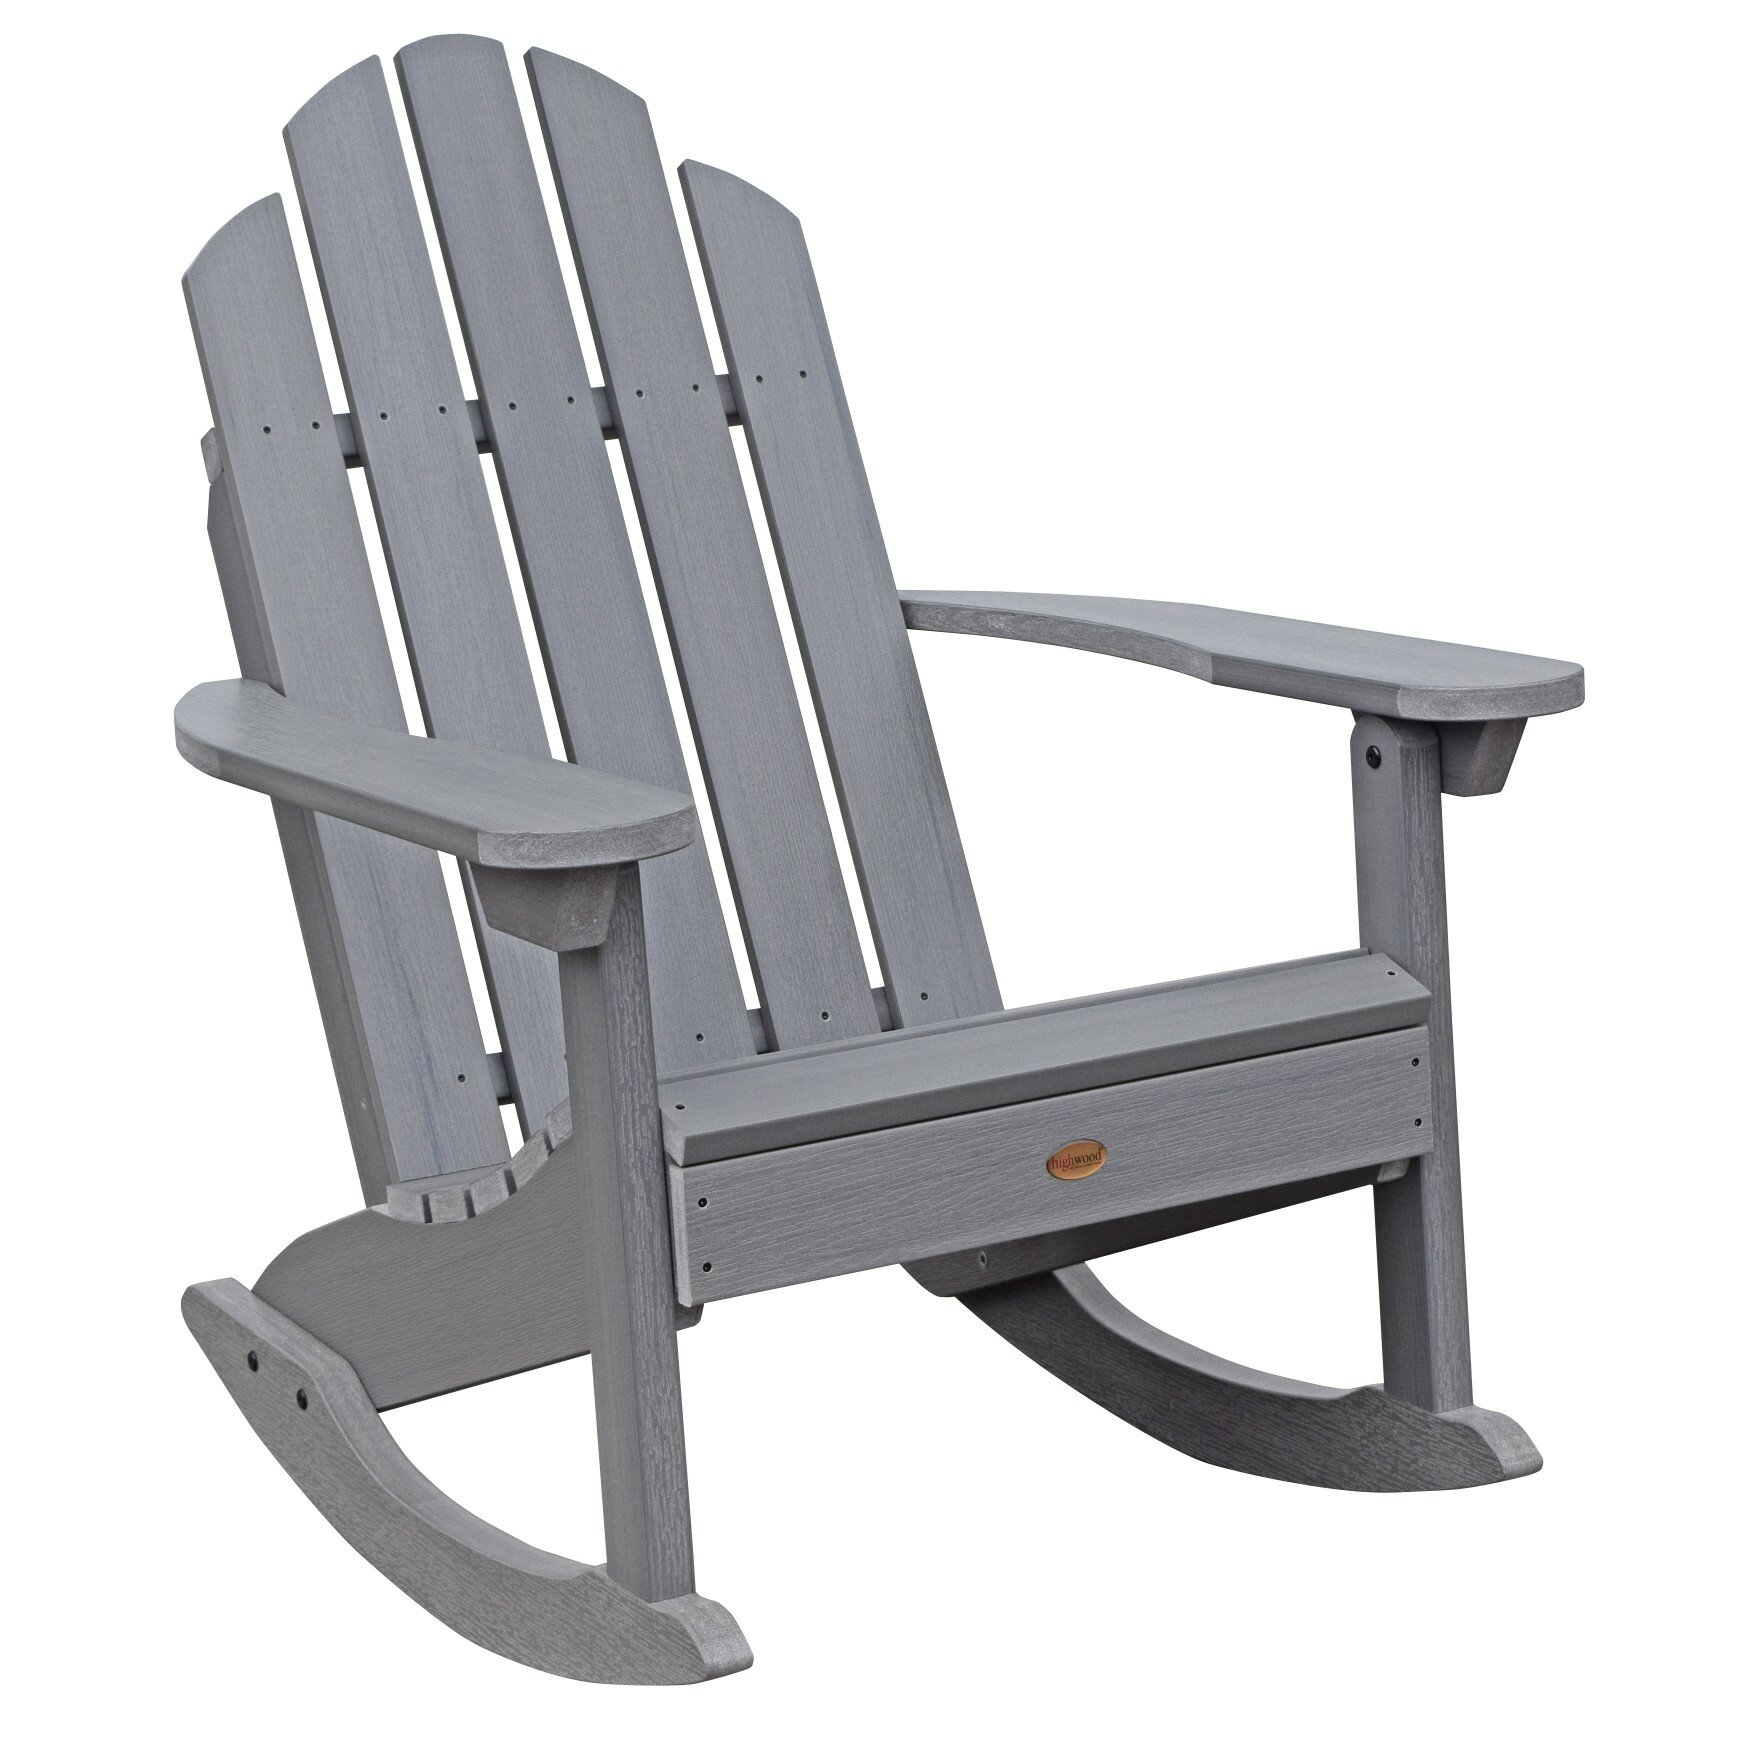 Charmant Darby Home Co Harald Adirondack Rocking Chair | Wayfair